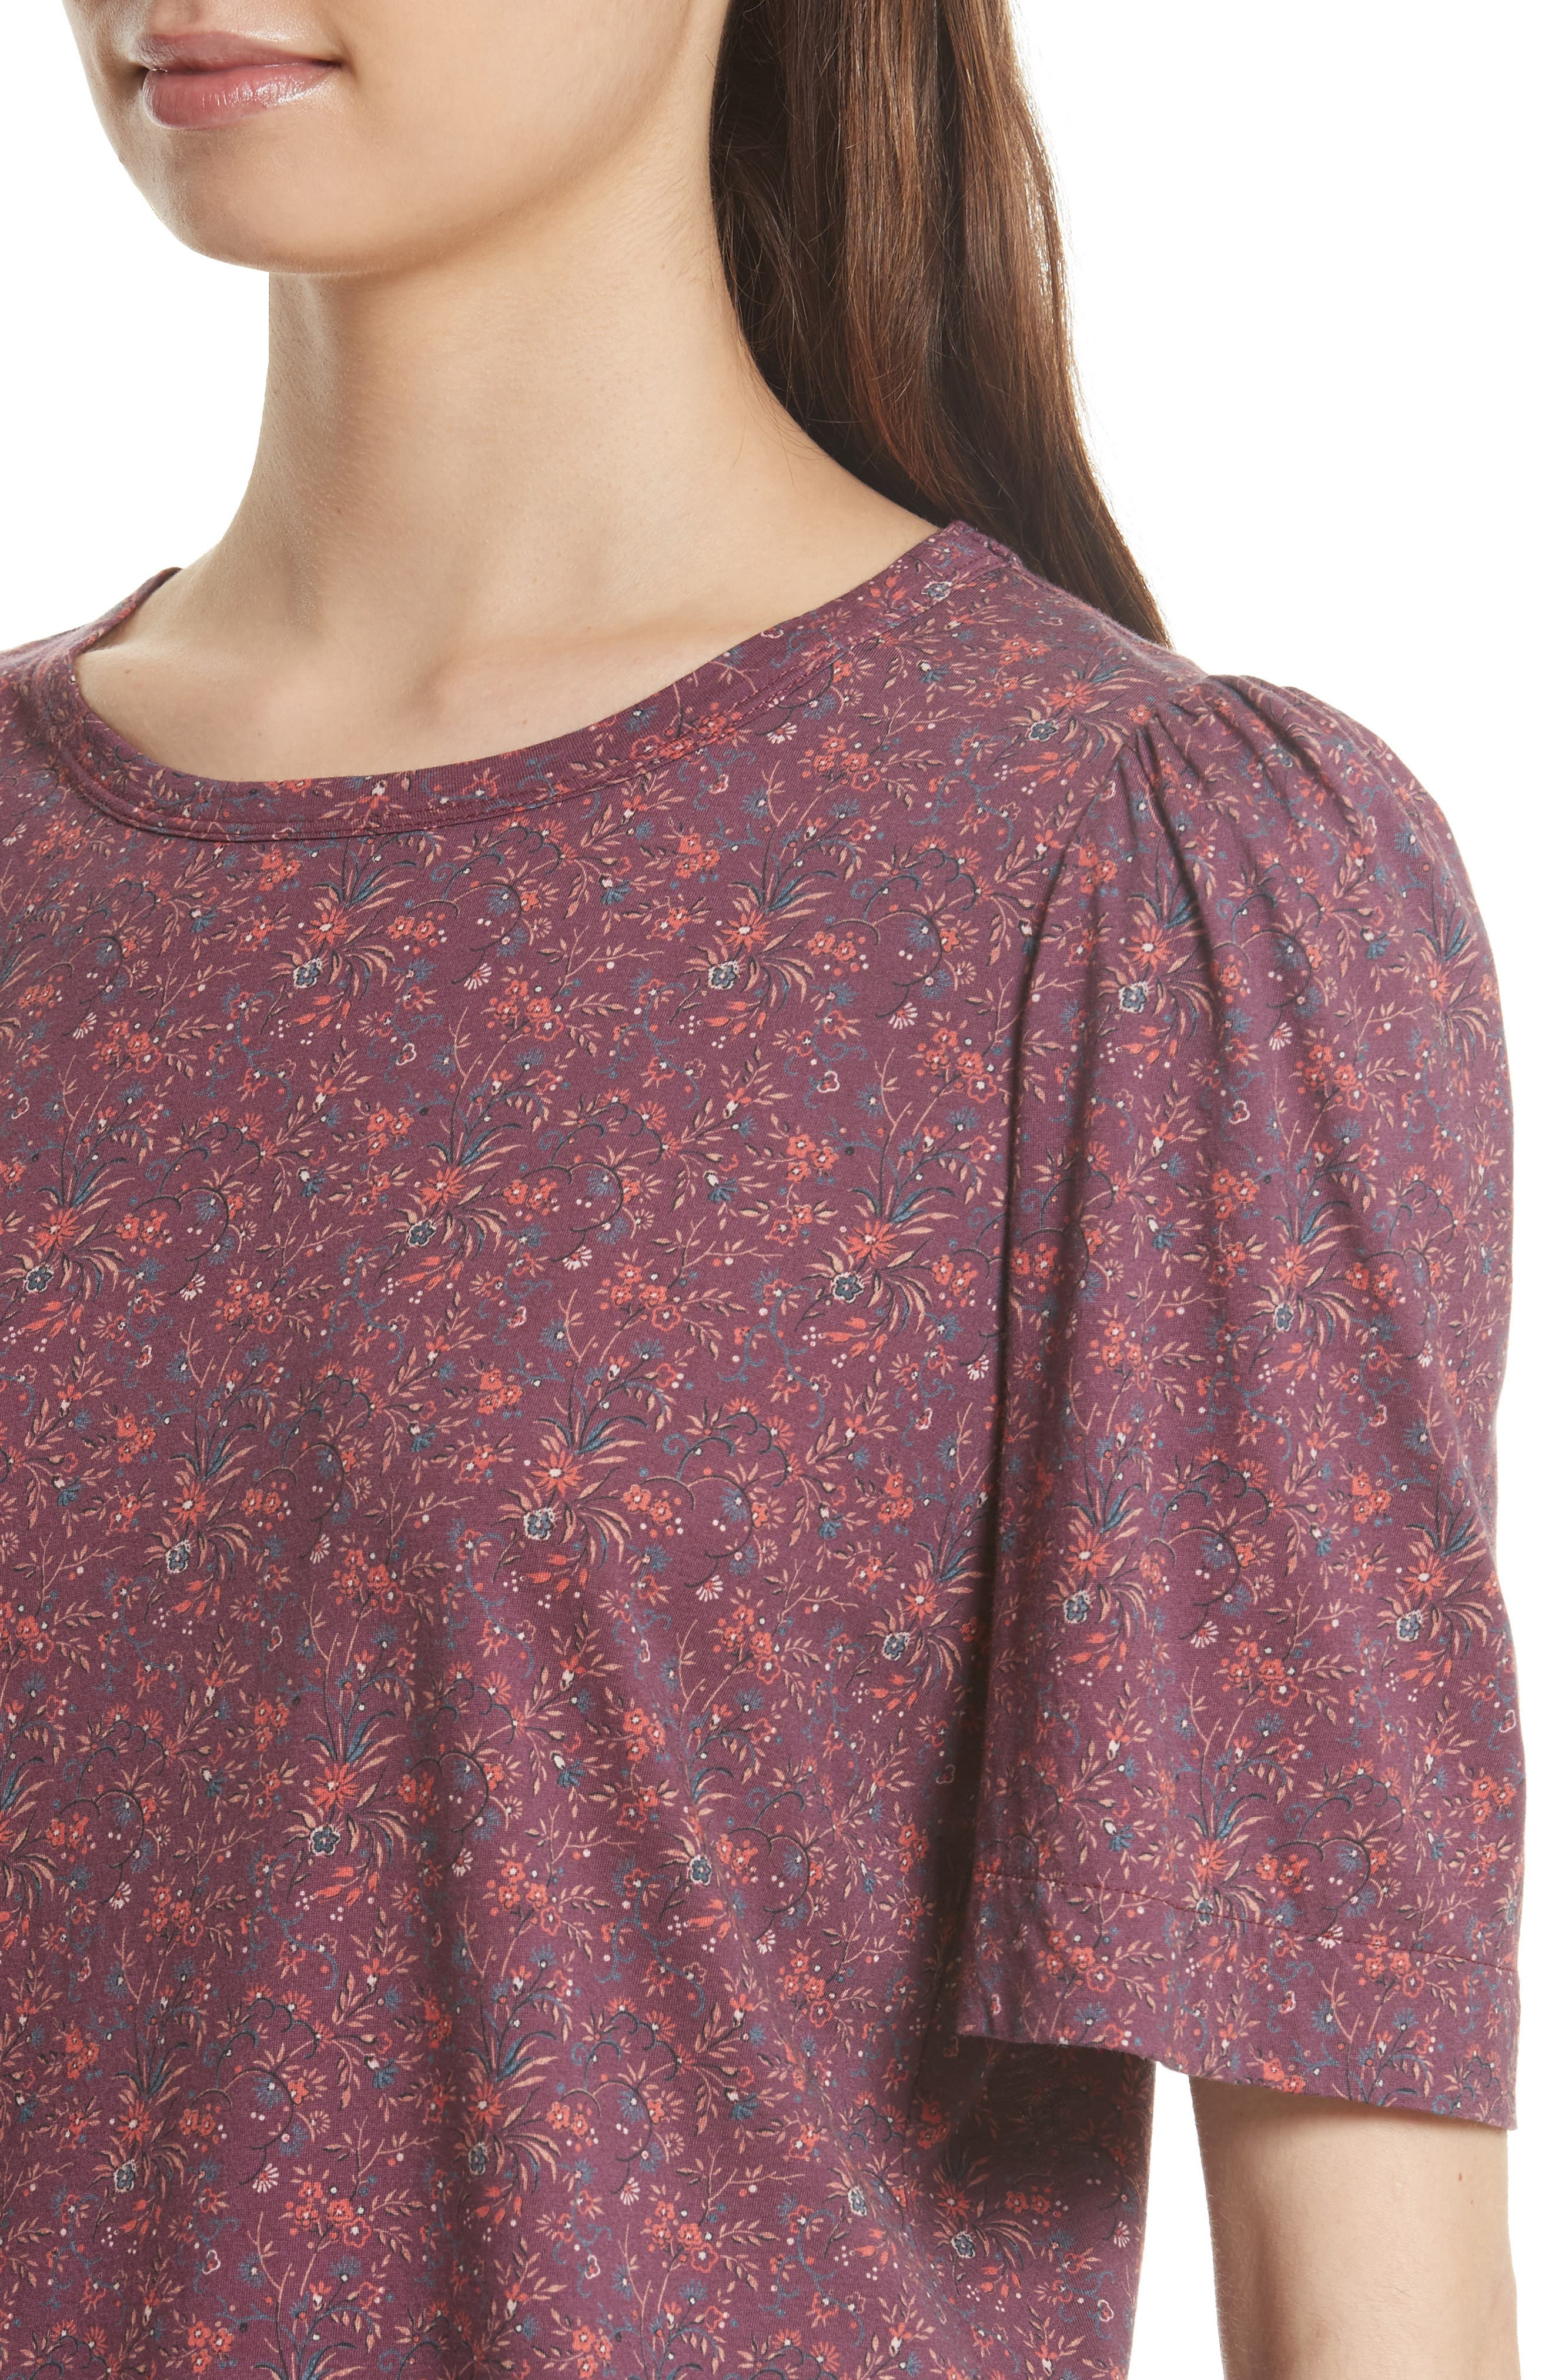 Rebecca Taylor Brittany Floral Jersey Top,                             Alternate thumbnail 4, color,                             503